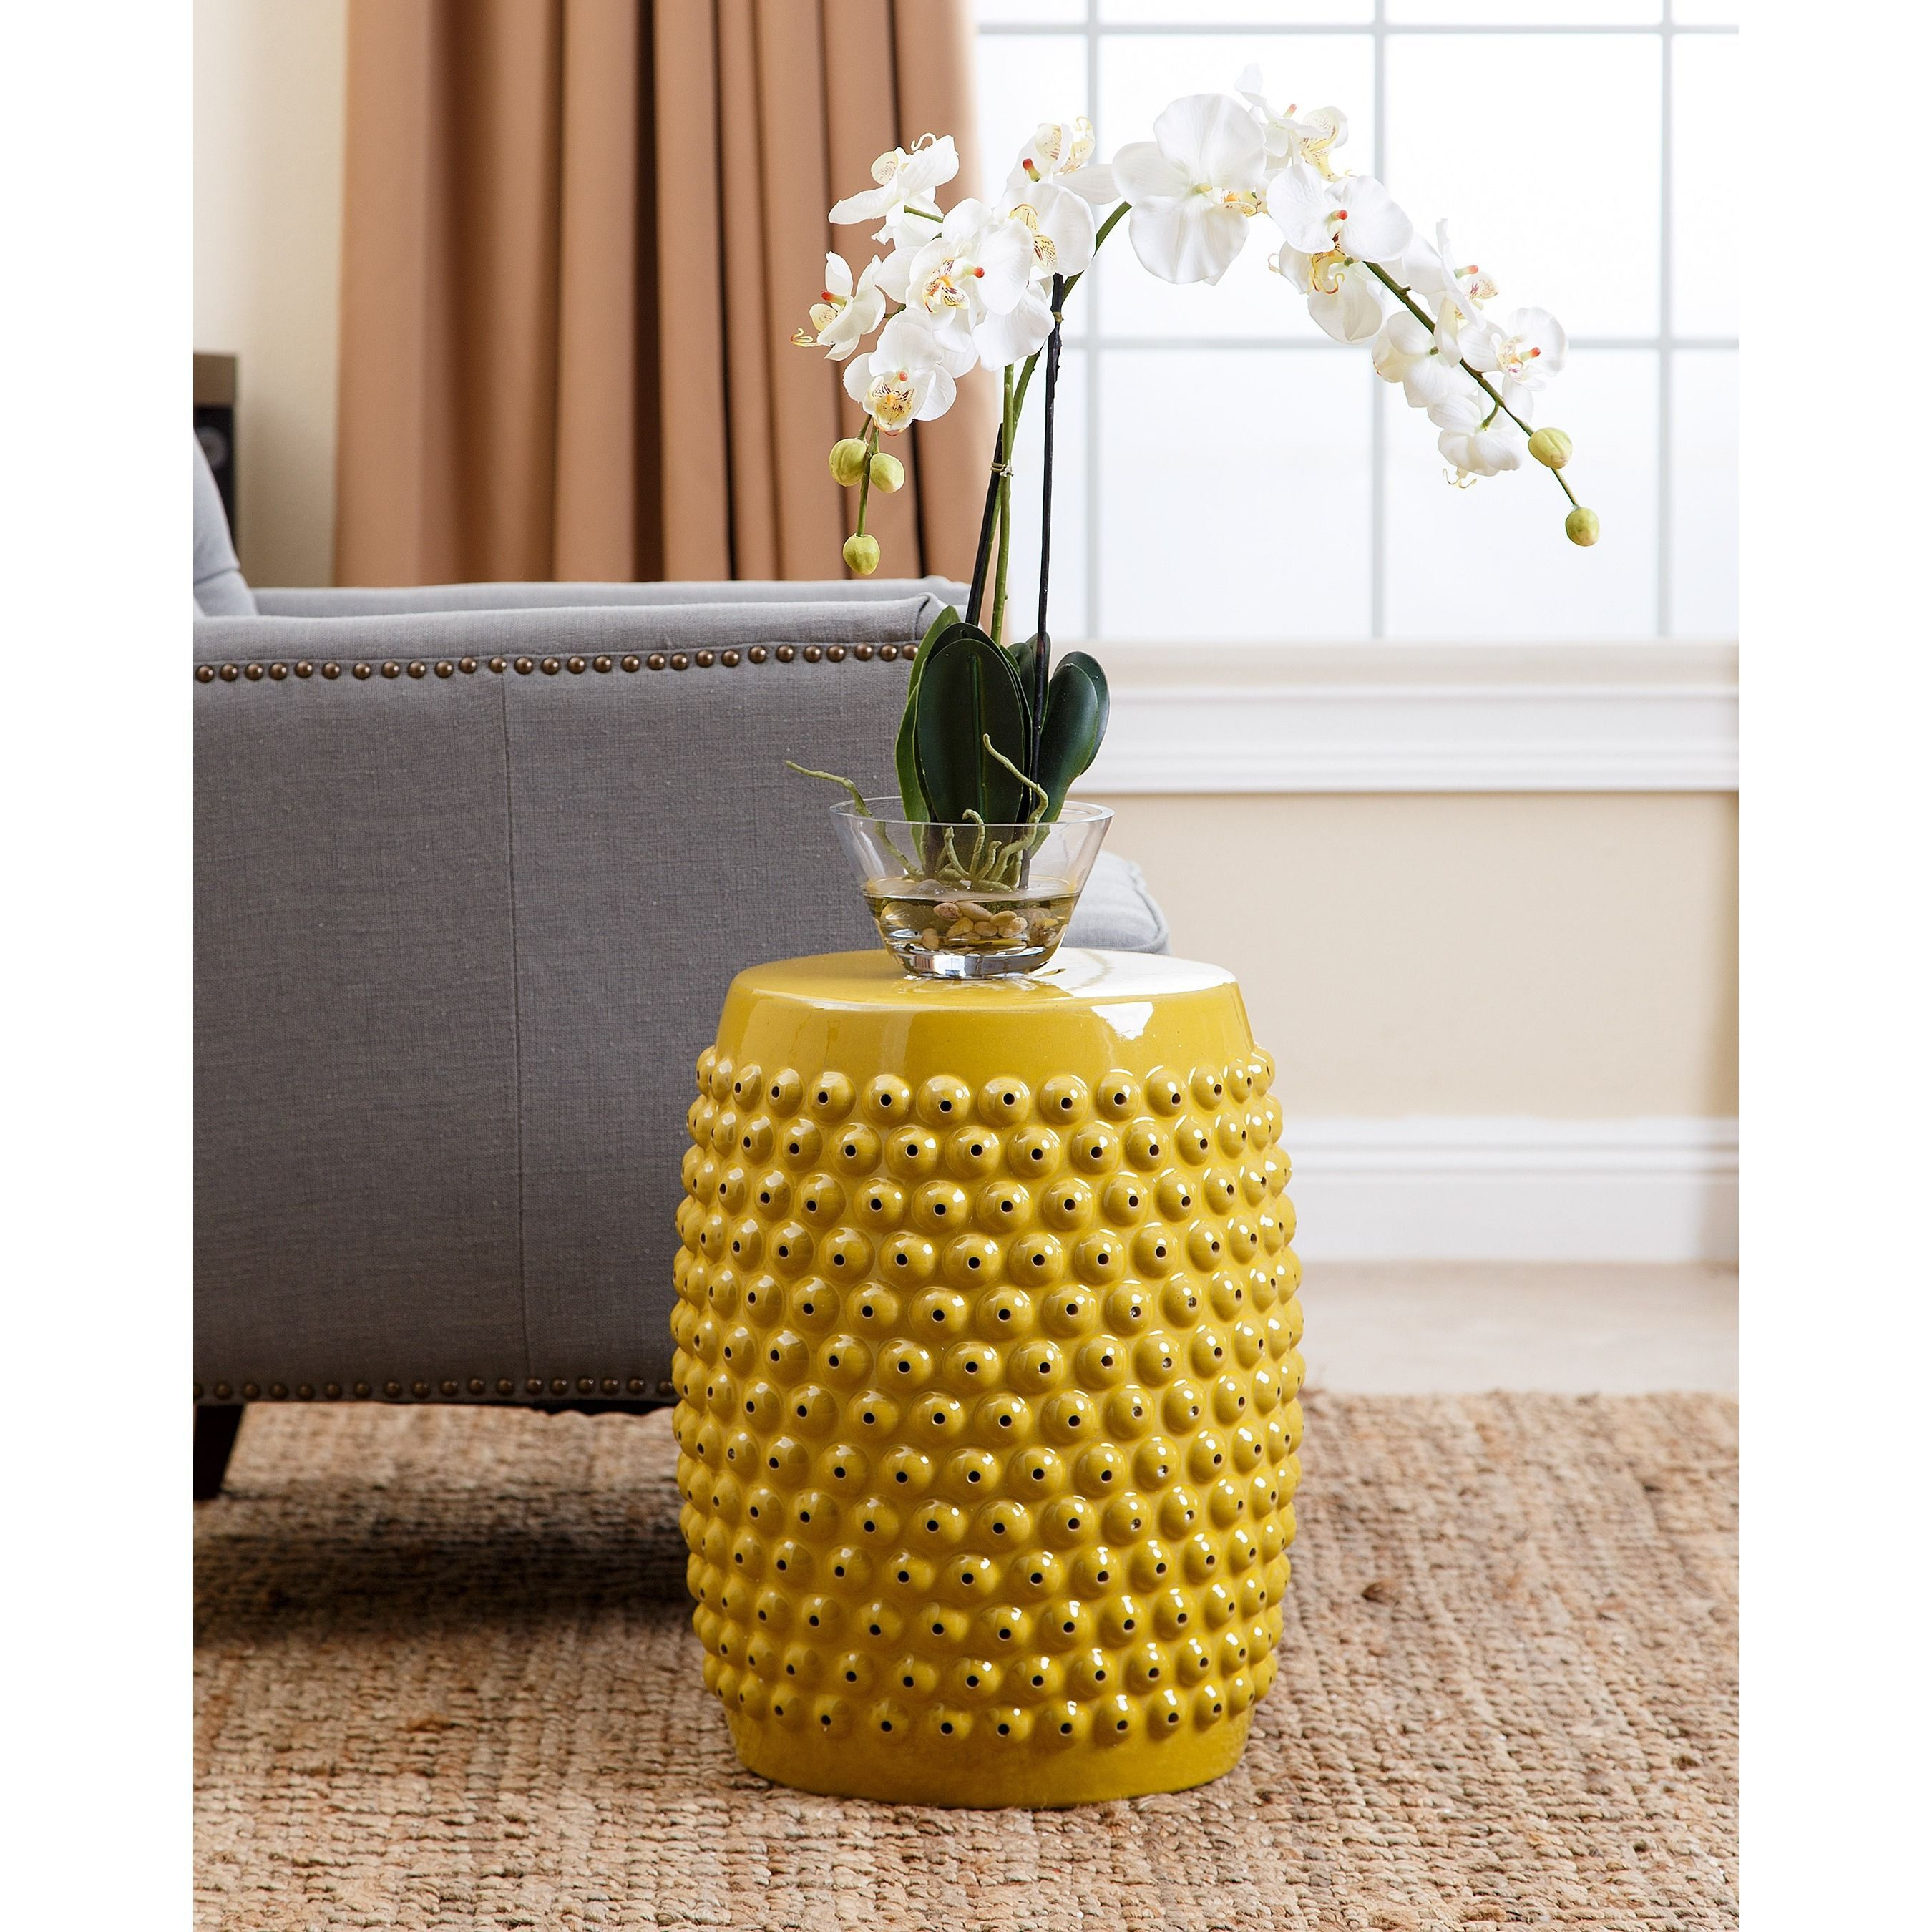 Garden Stool Home Goods: Free Shipping On Orders Over $45 At Overstock.comu2026